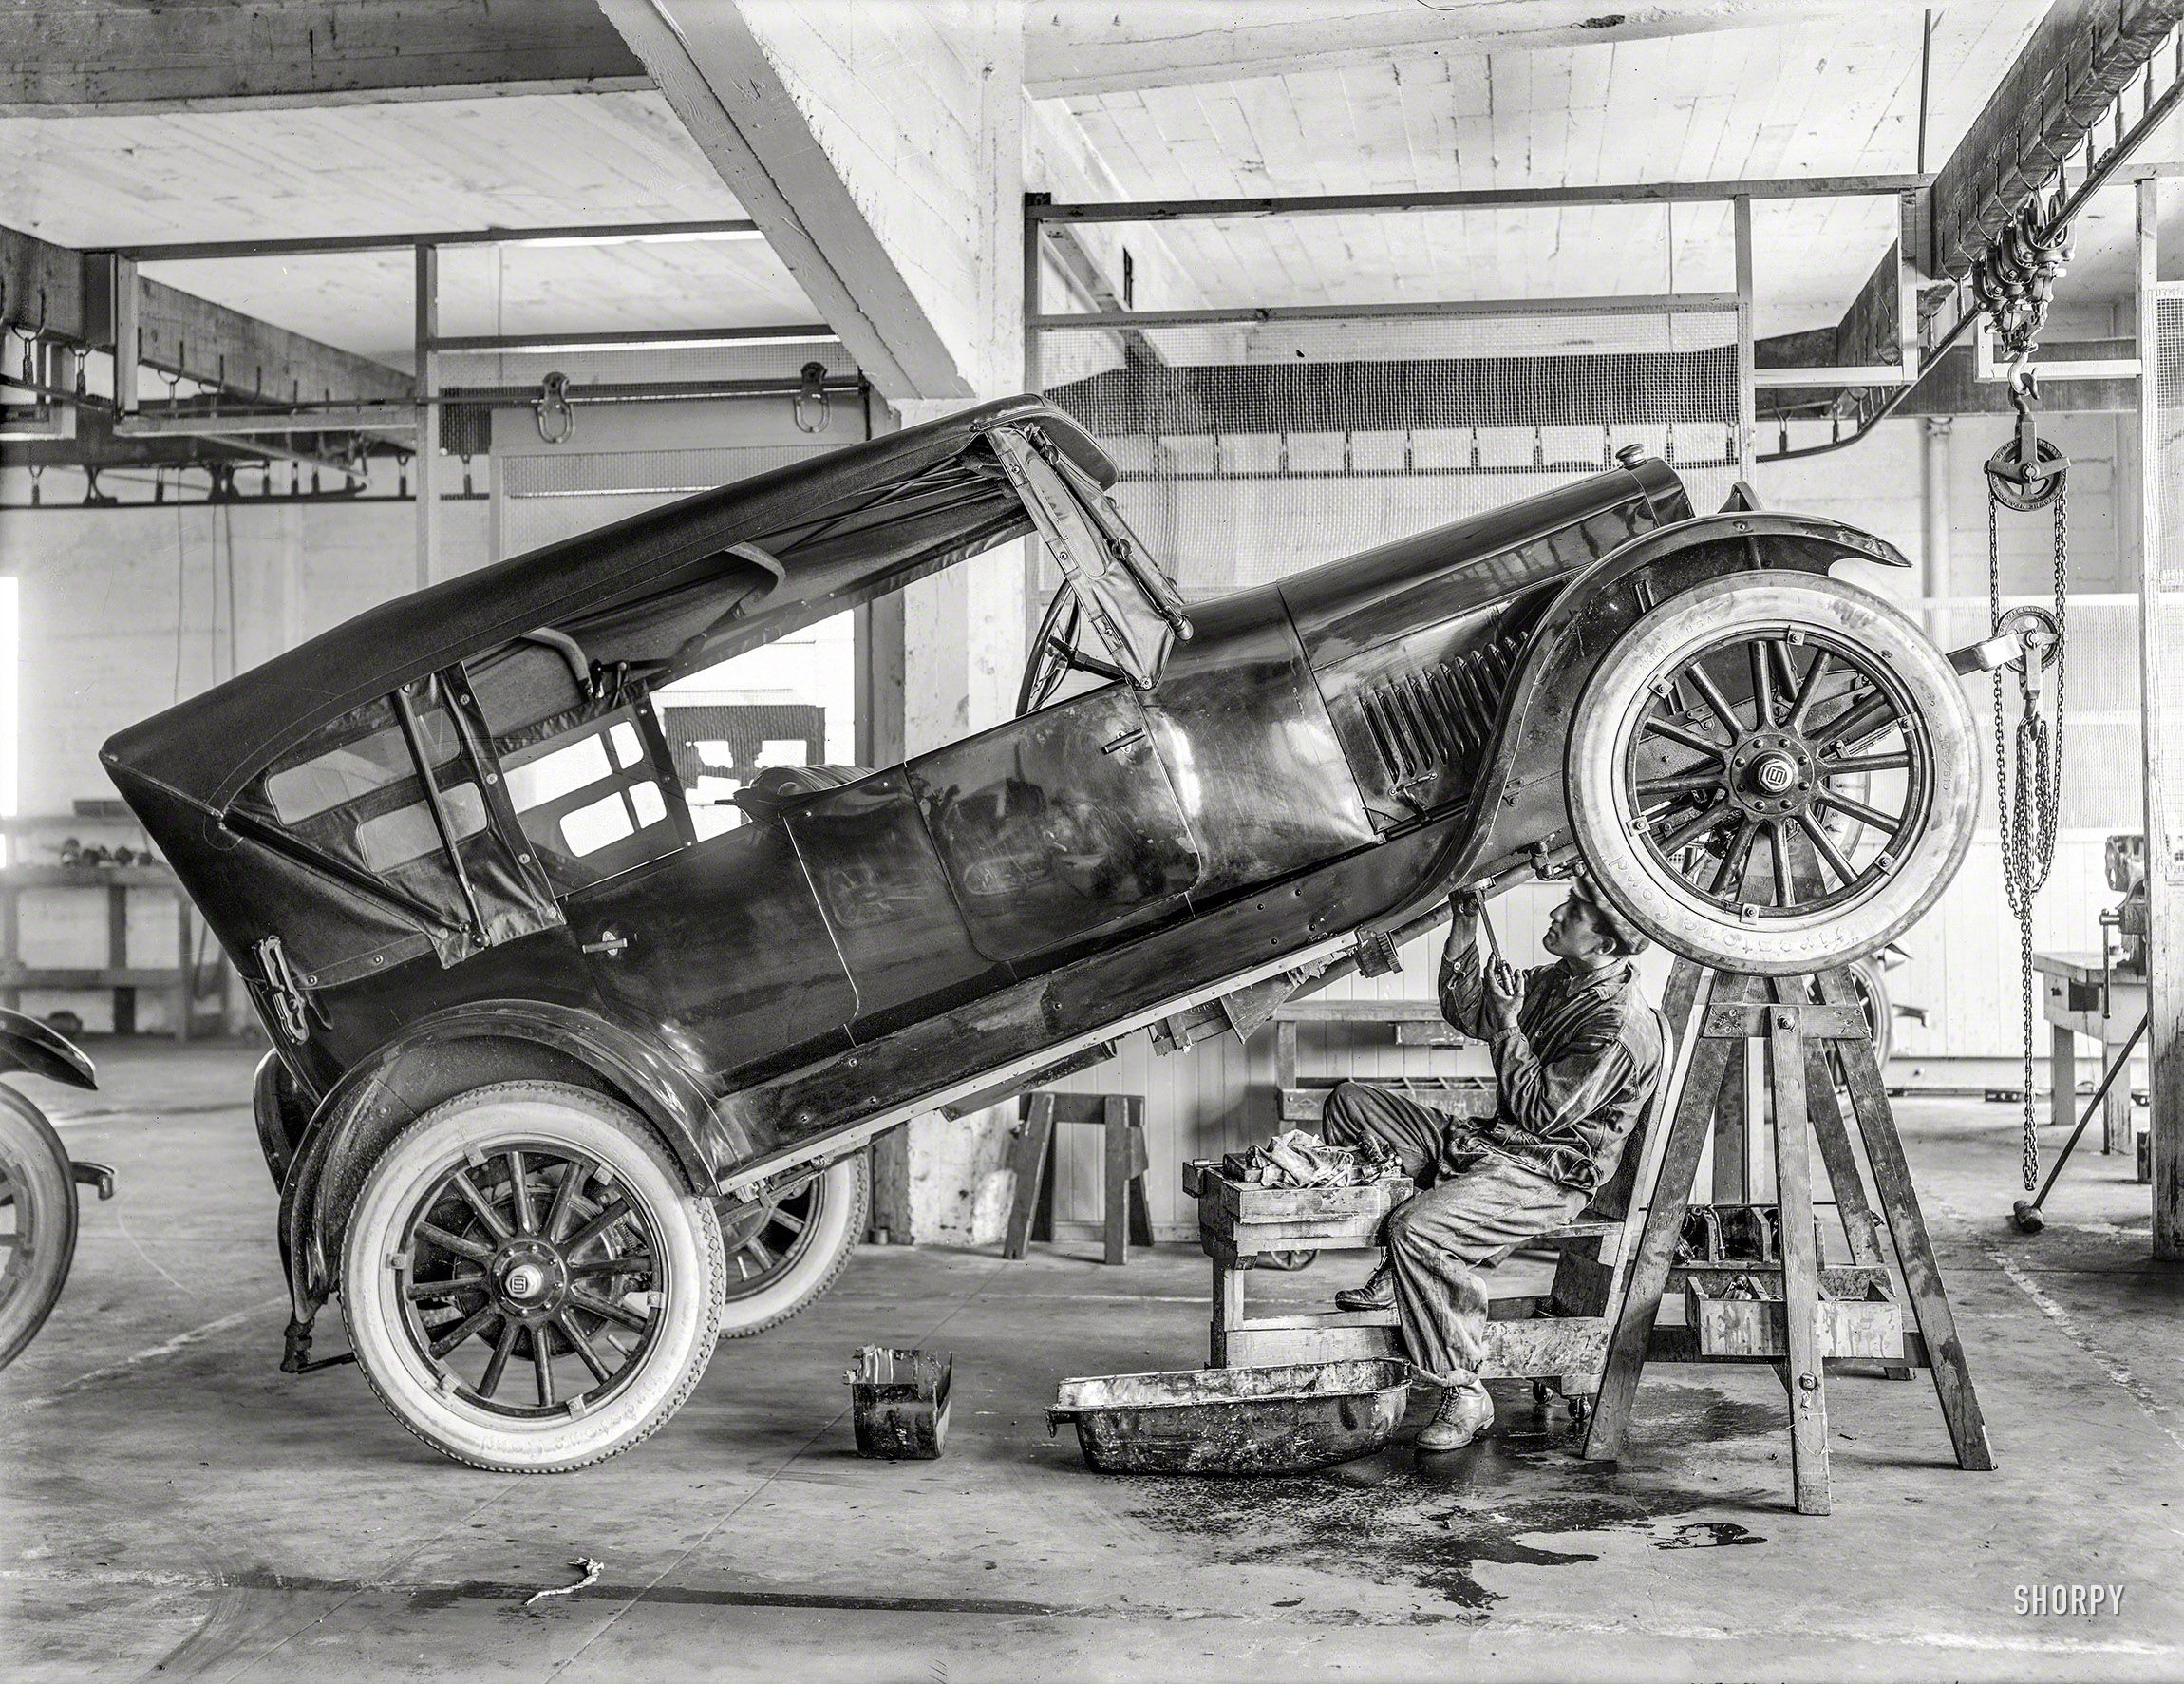 Circa 1919 Studebaker Motor Car In Repair Shop With